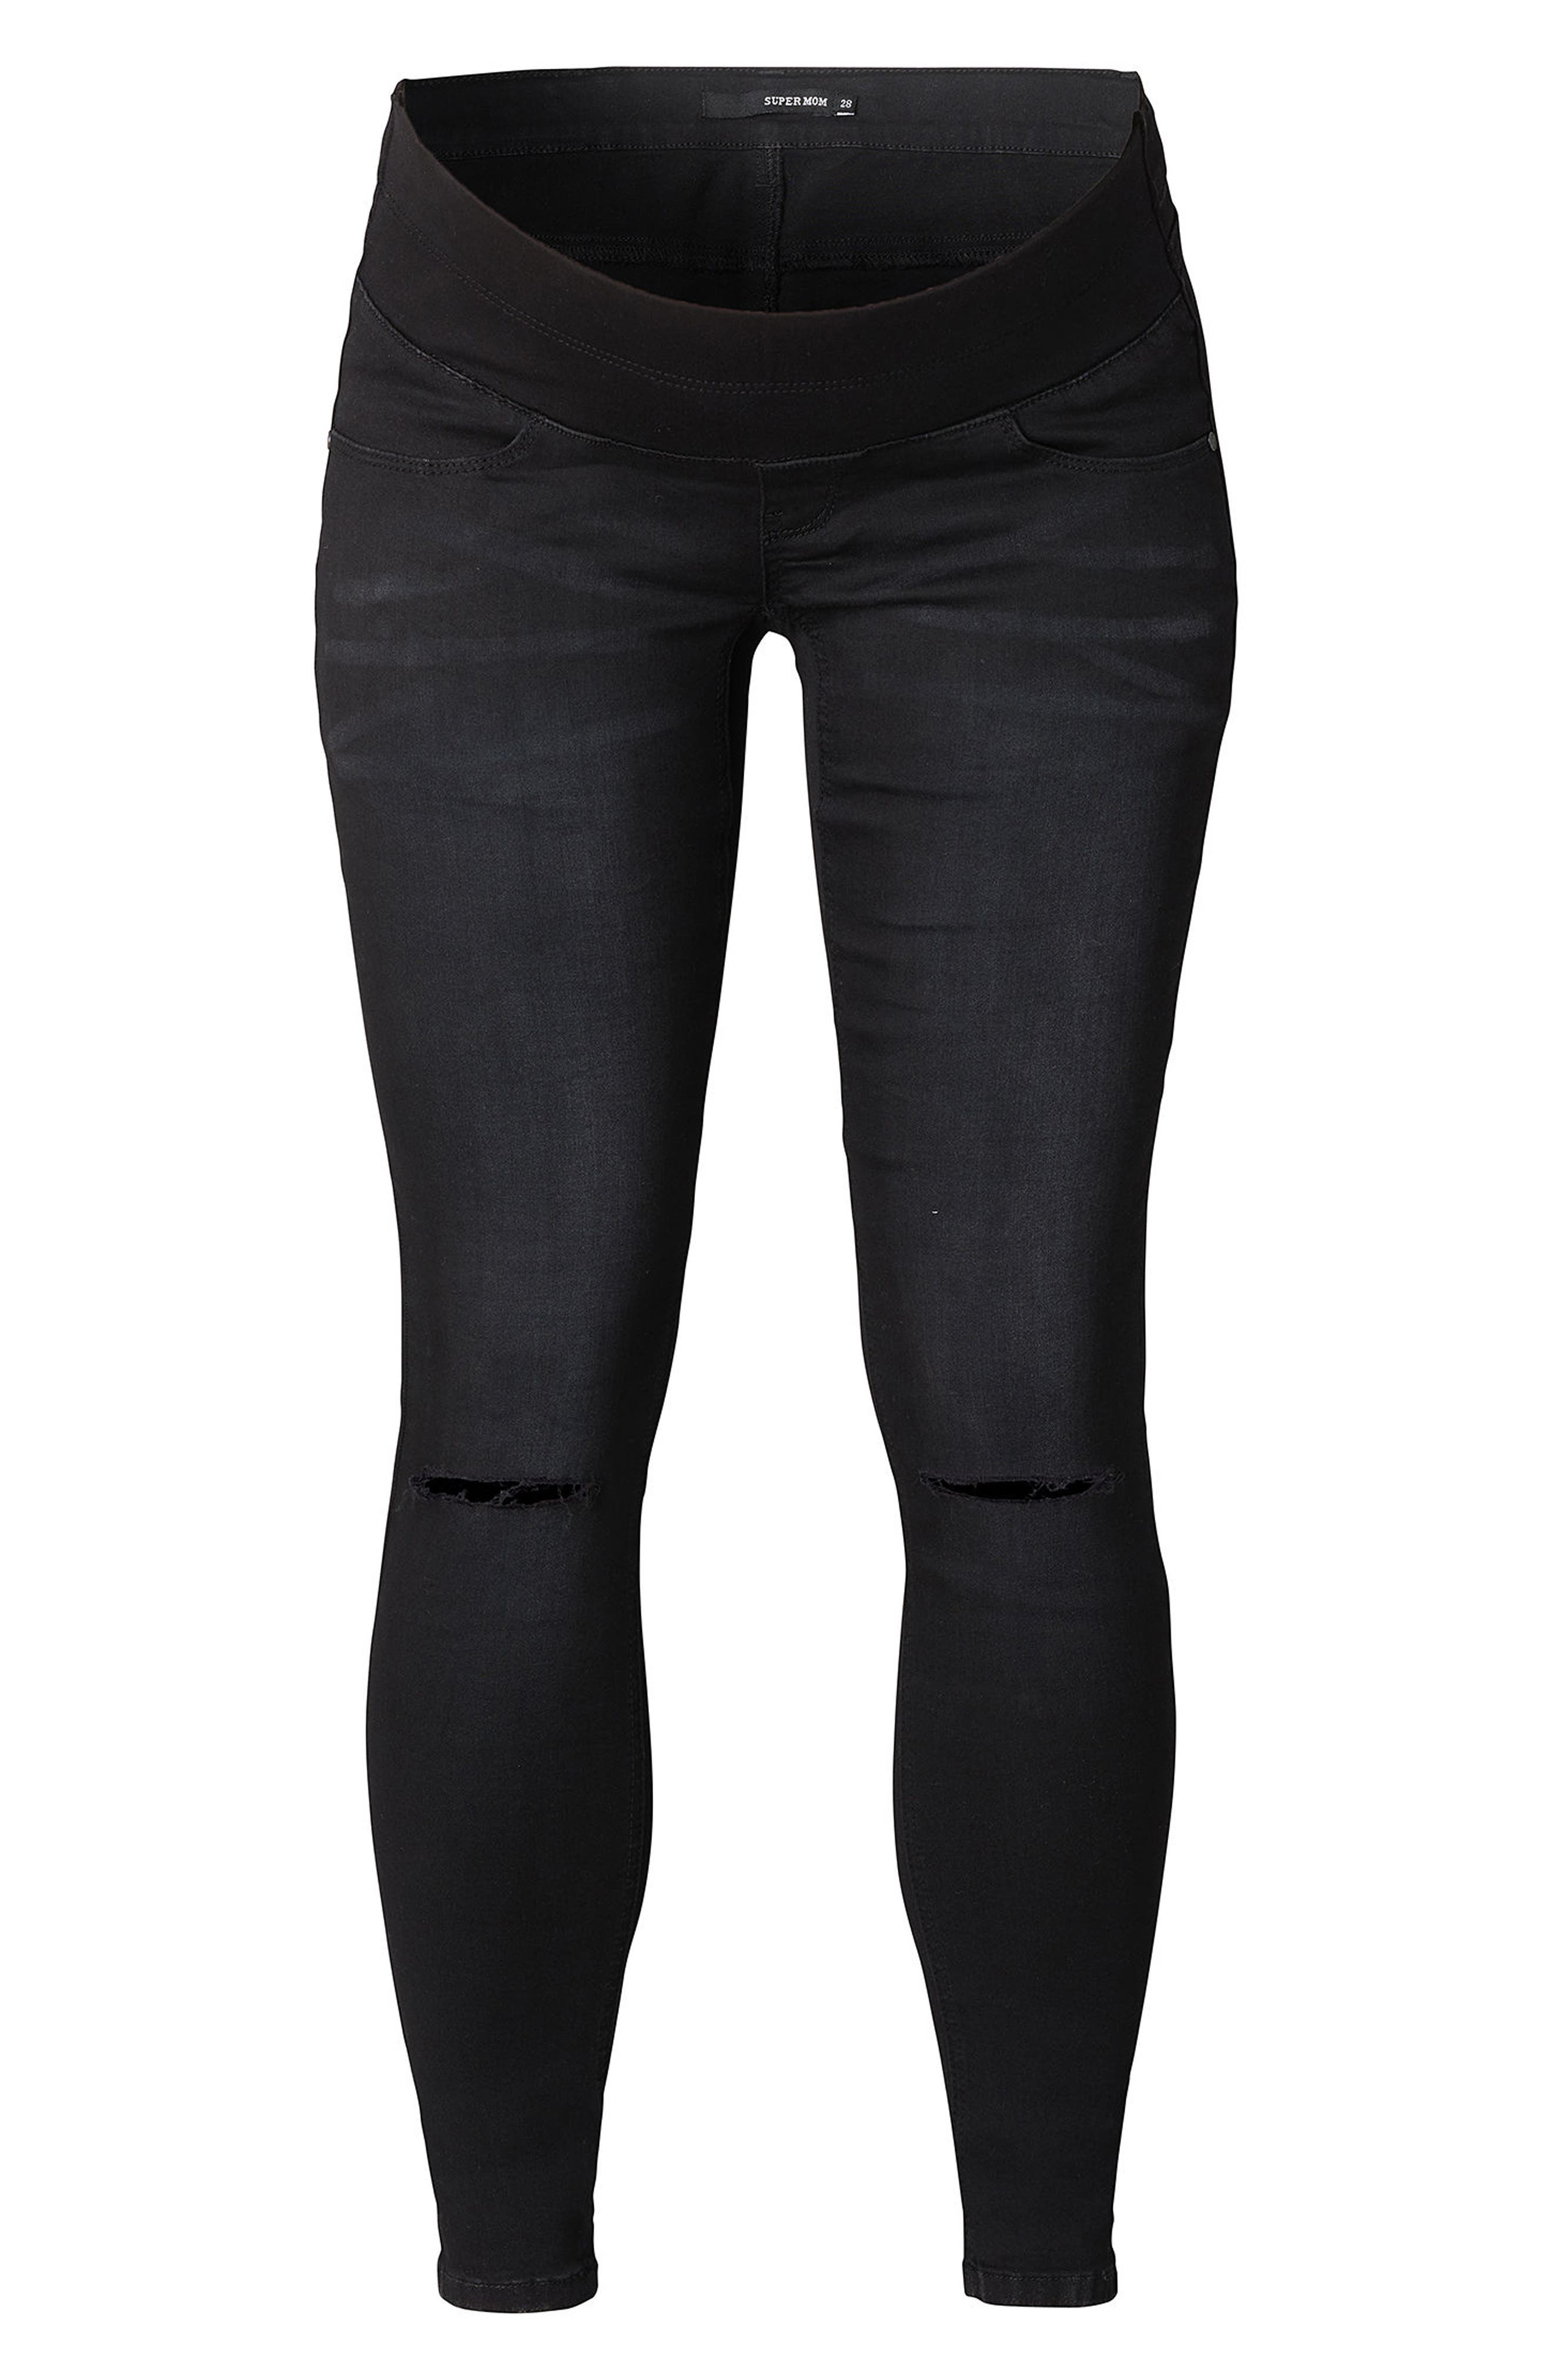 Under the Belly Skinny Maternity Jeans,                             Main thumbnail 1, color,                             Black Denim